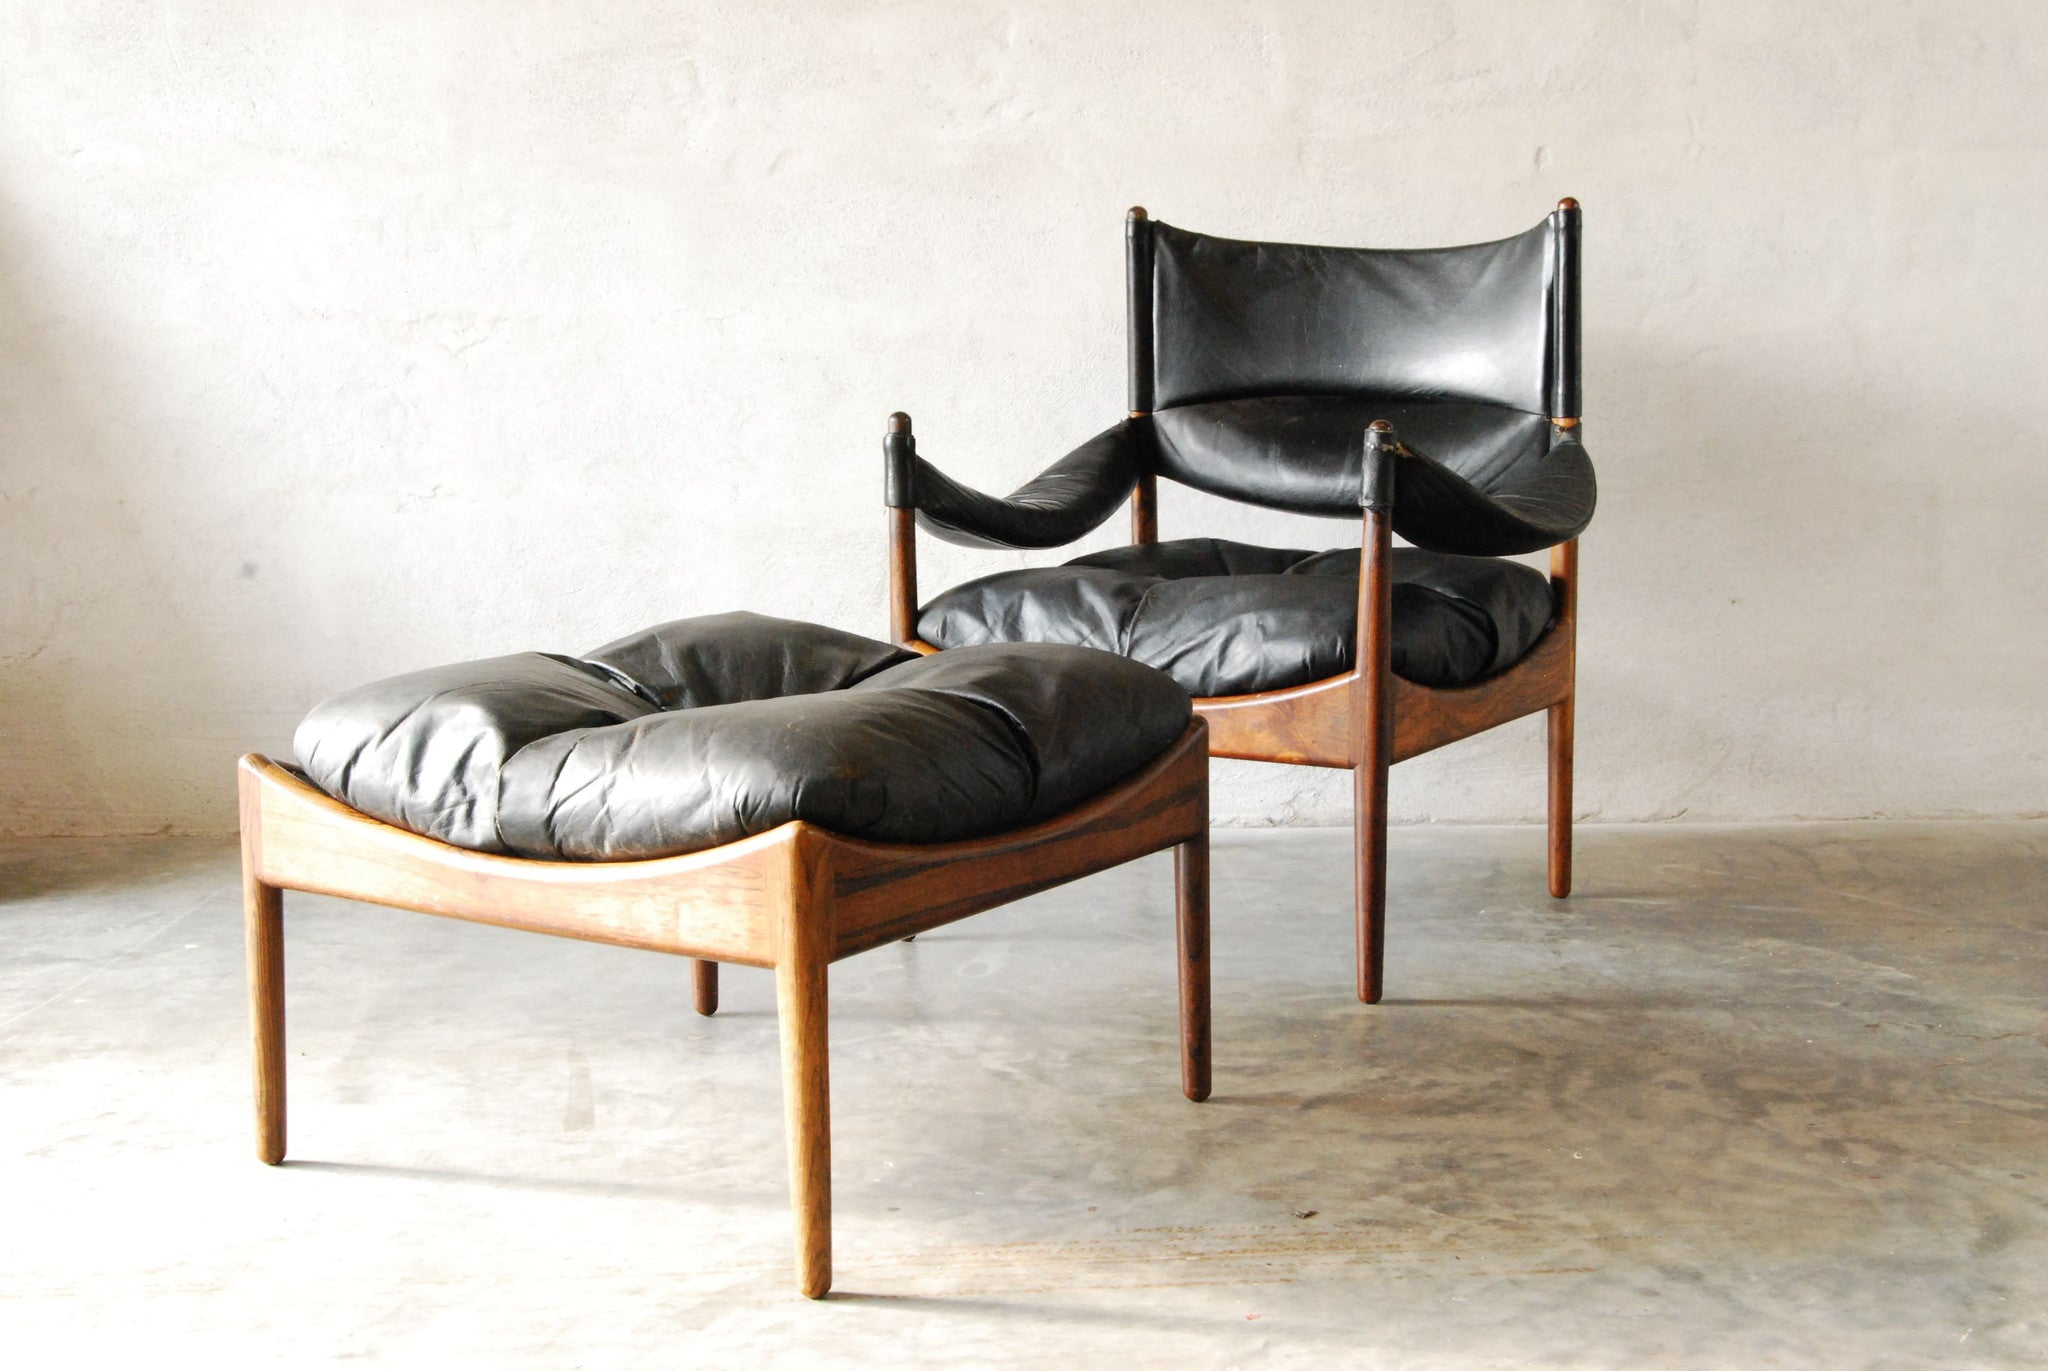 Modus chair and footstool by Kristian Solmer Vedel